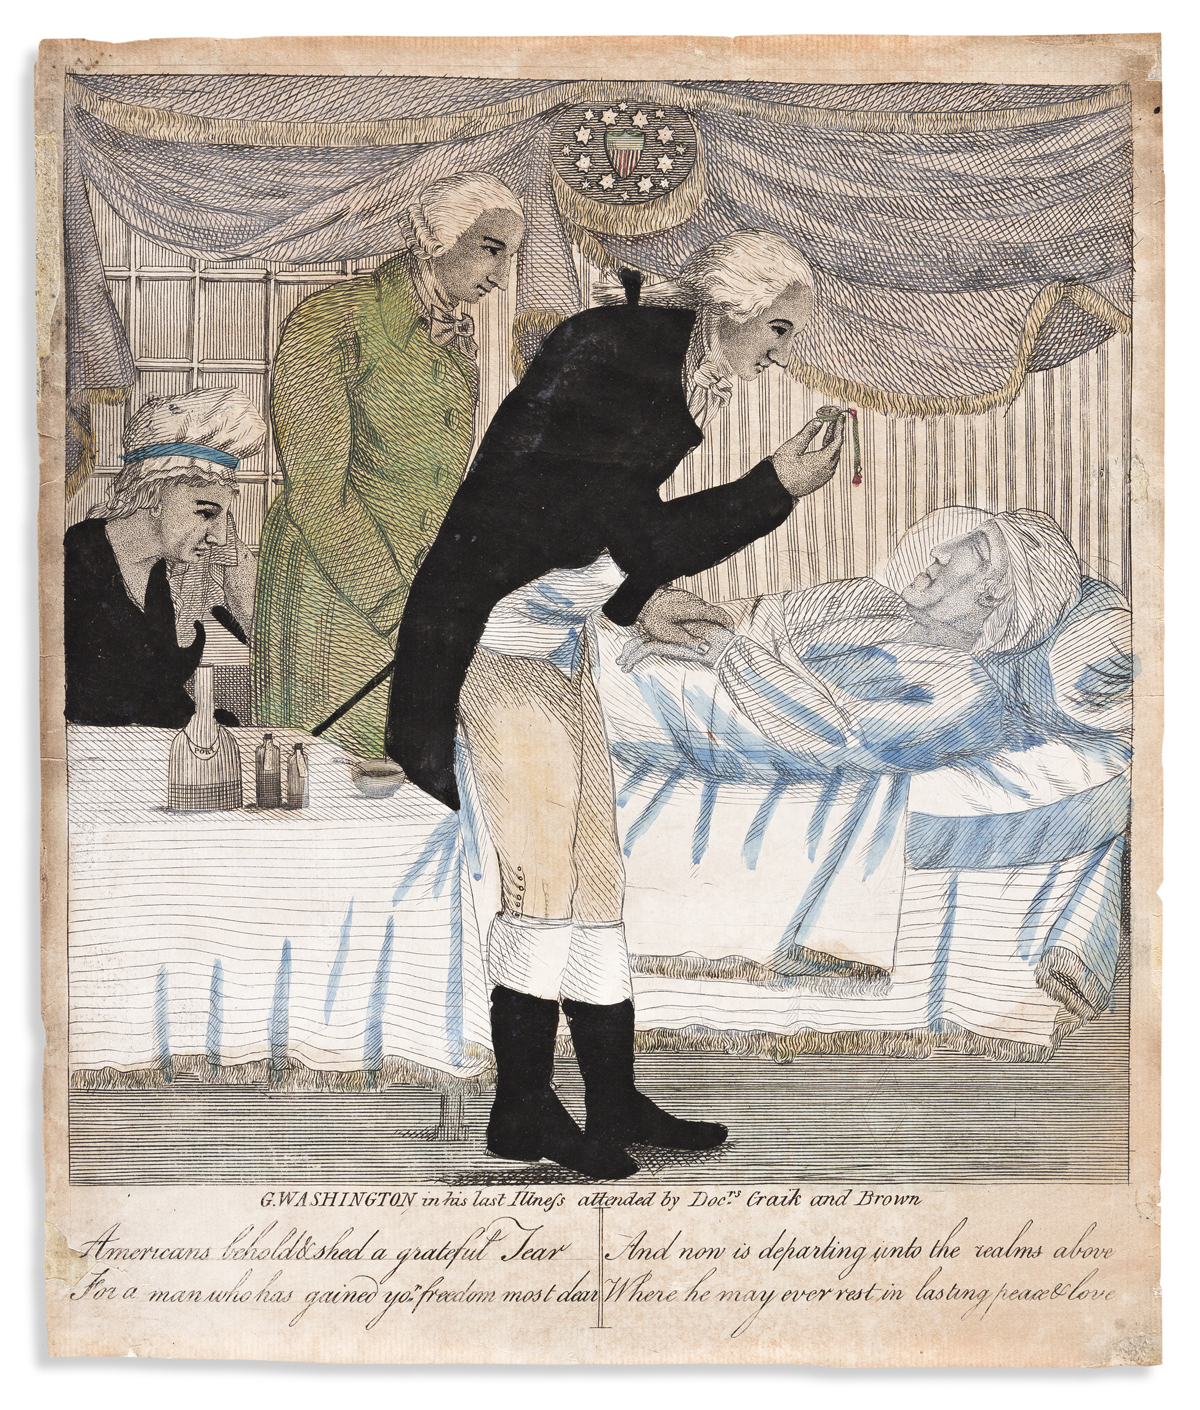 (WASHINGTON.) G. Washington in his Last Illness, Attended by Docrs Craik and Brown / Lived Respected and Feard--